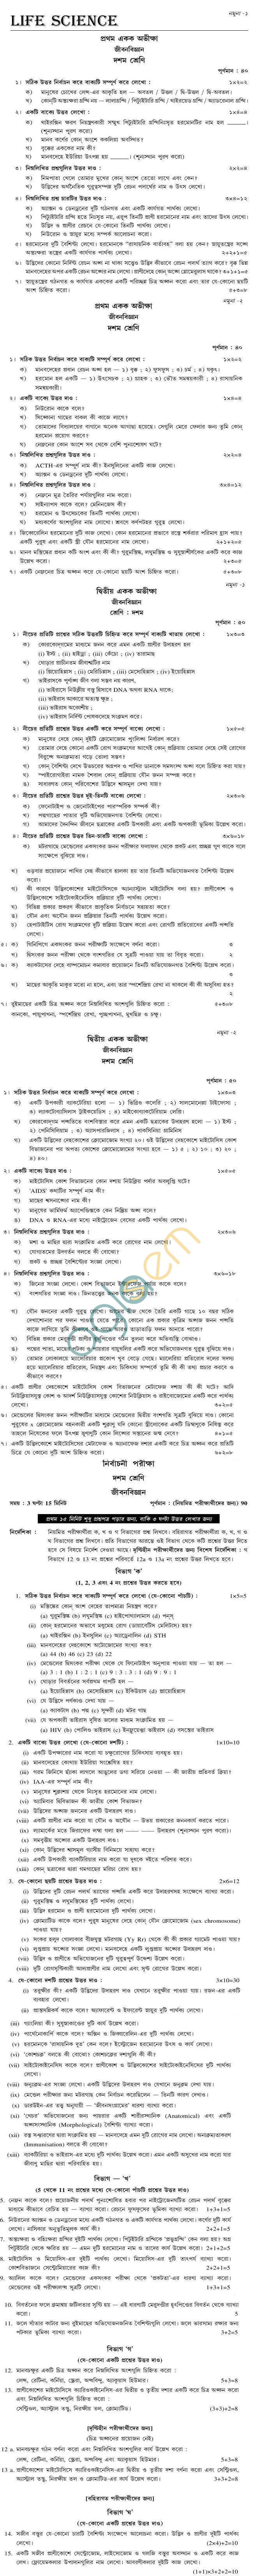 WB Board Sample Question Papers for Madhyamik Pariksha (Class 10) -Life Science